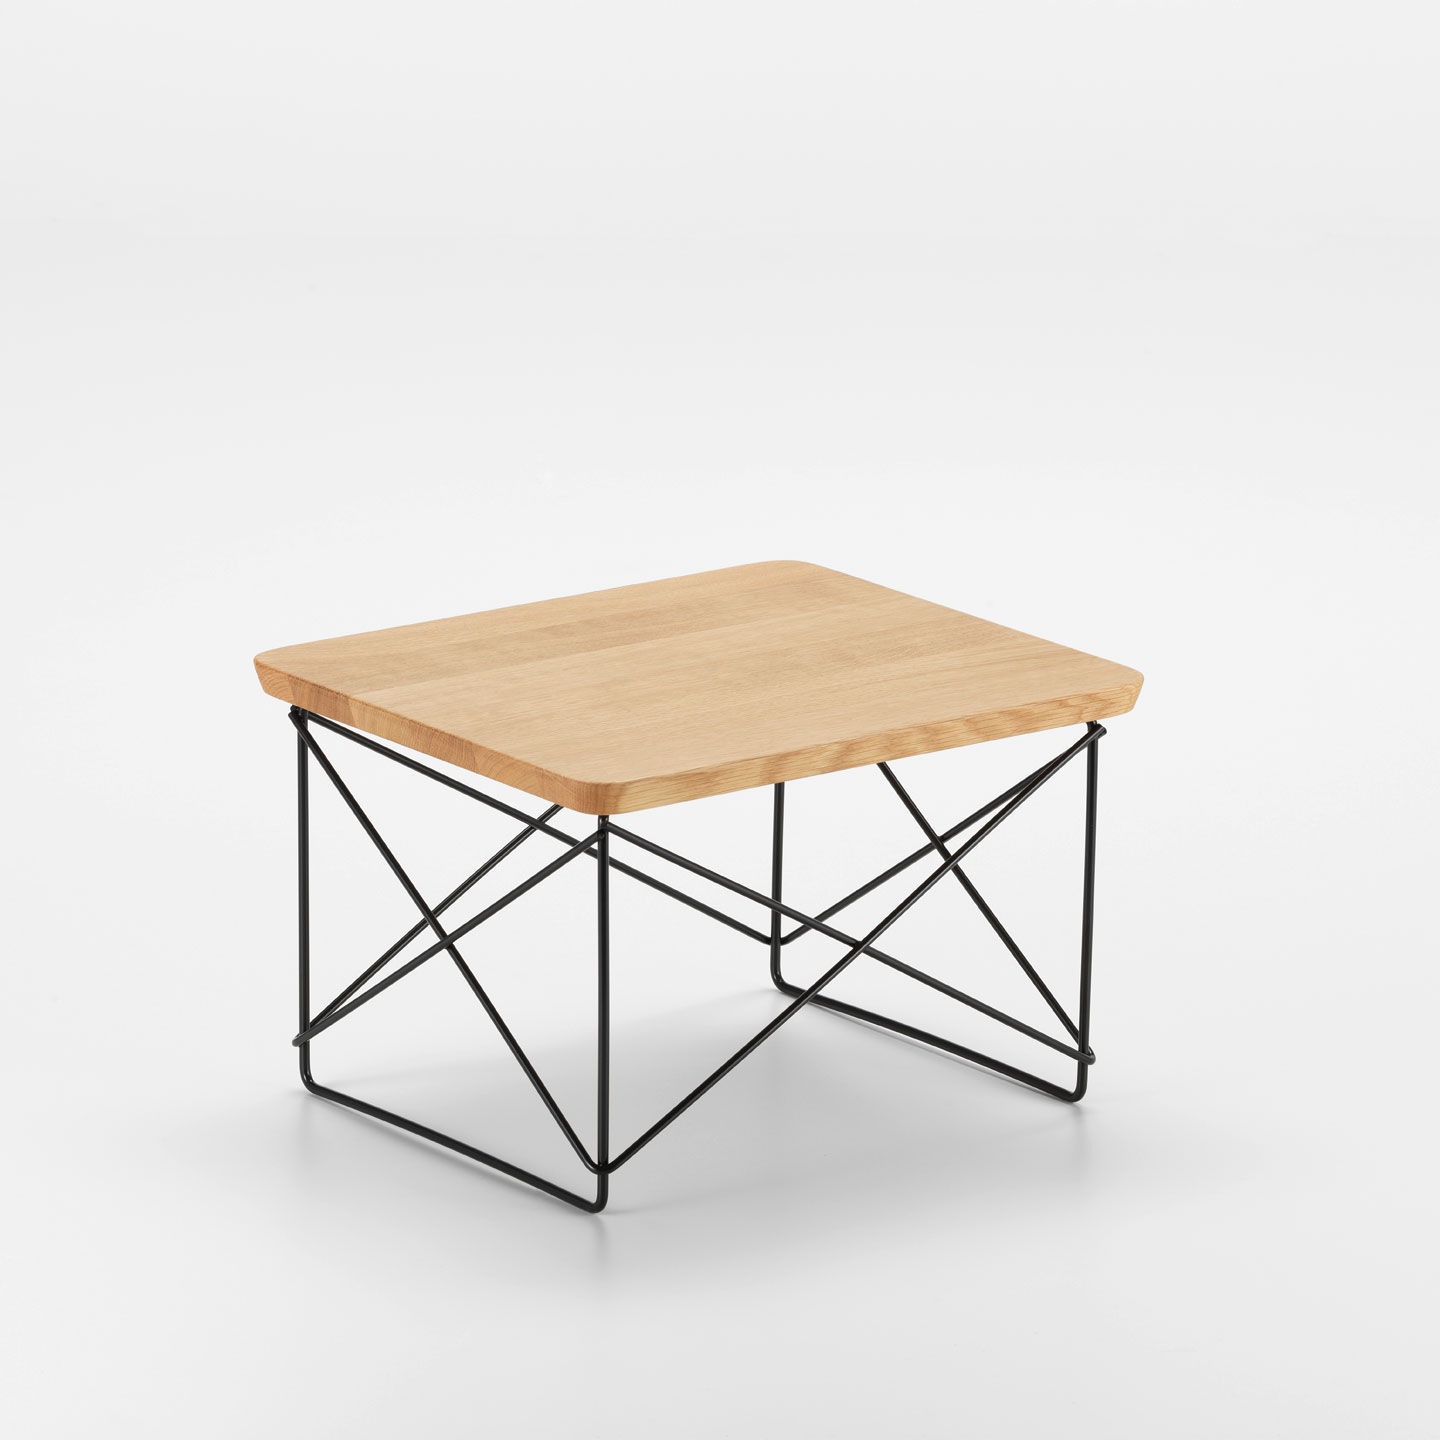 LTR Occassional Table